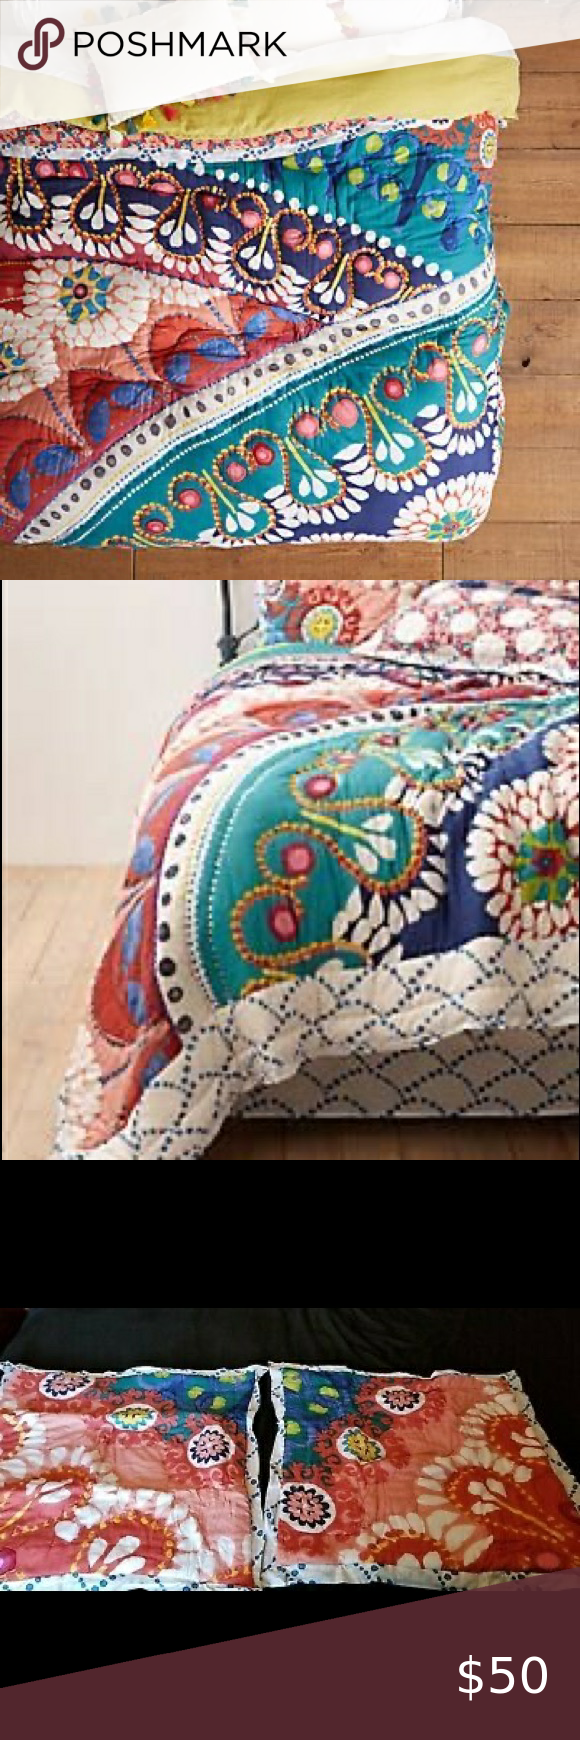 Zocalo Embroidered Quilt From Anthro In 2020 Embroidered Quilts Quilts Anthropologie Bedding